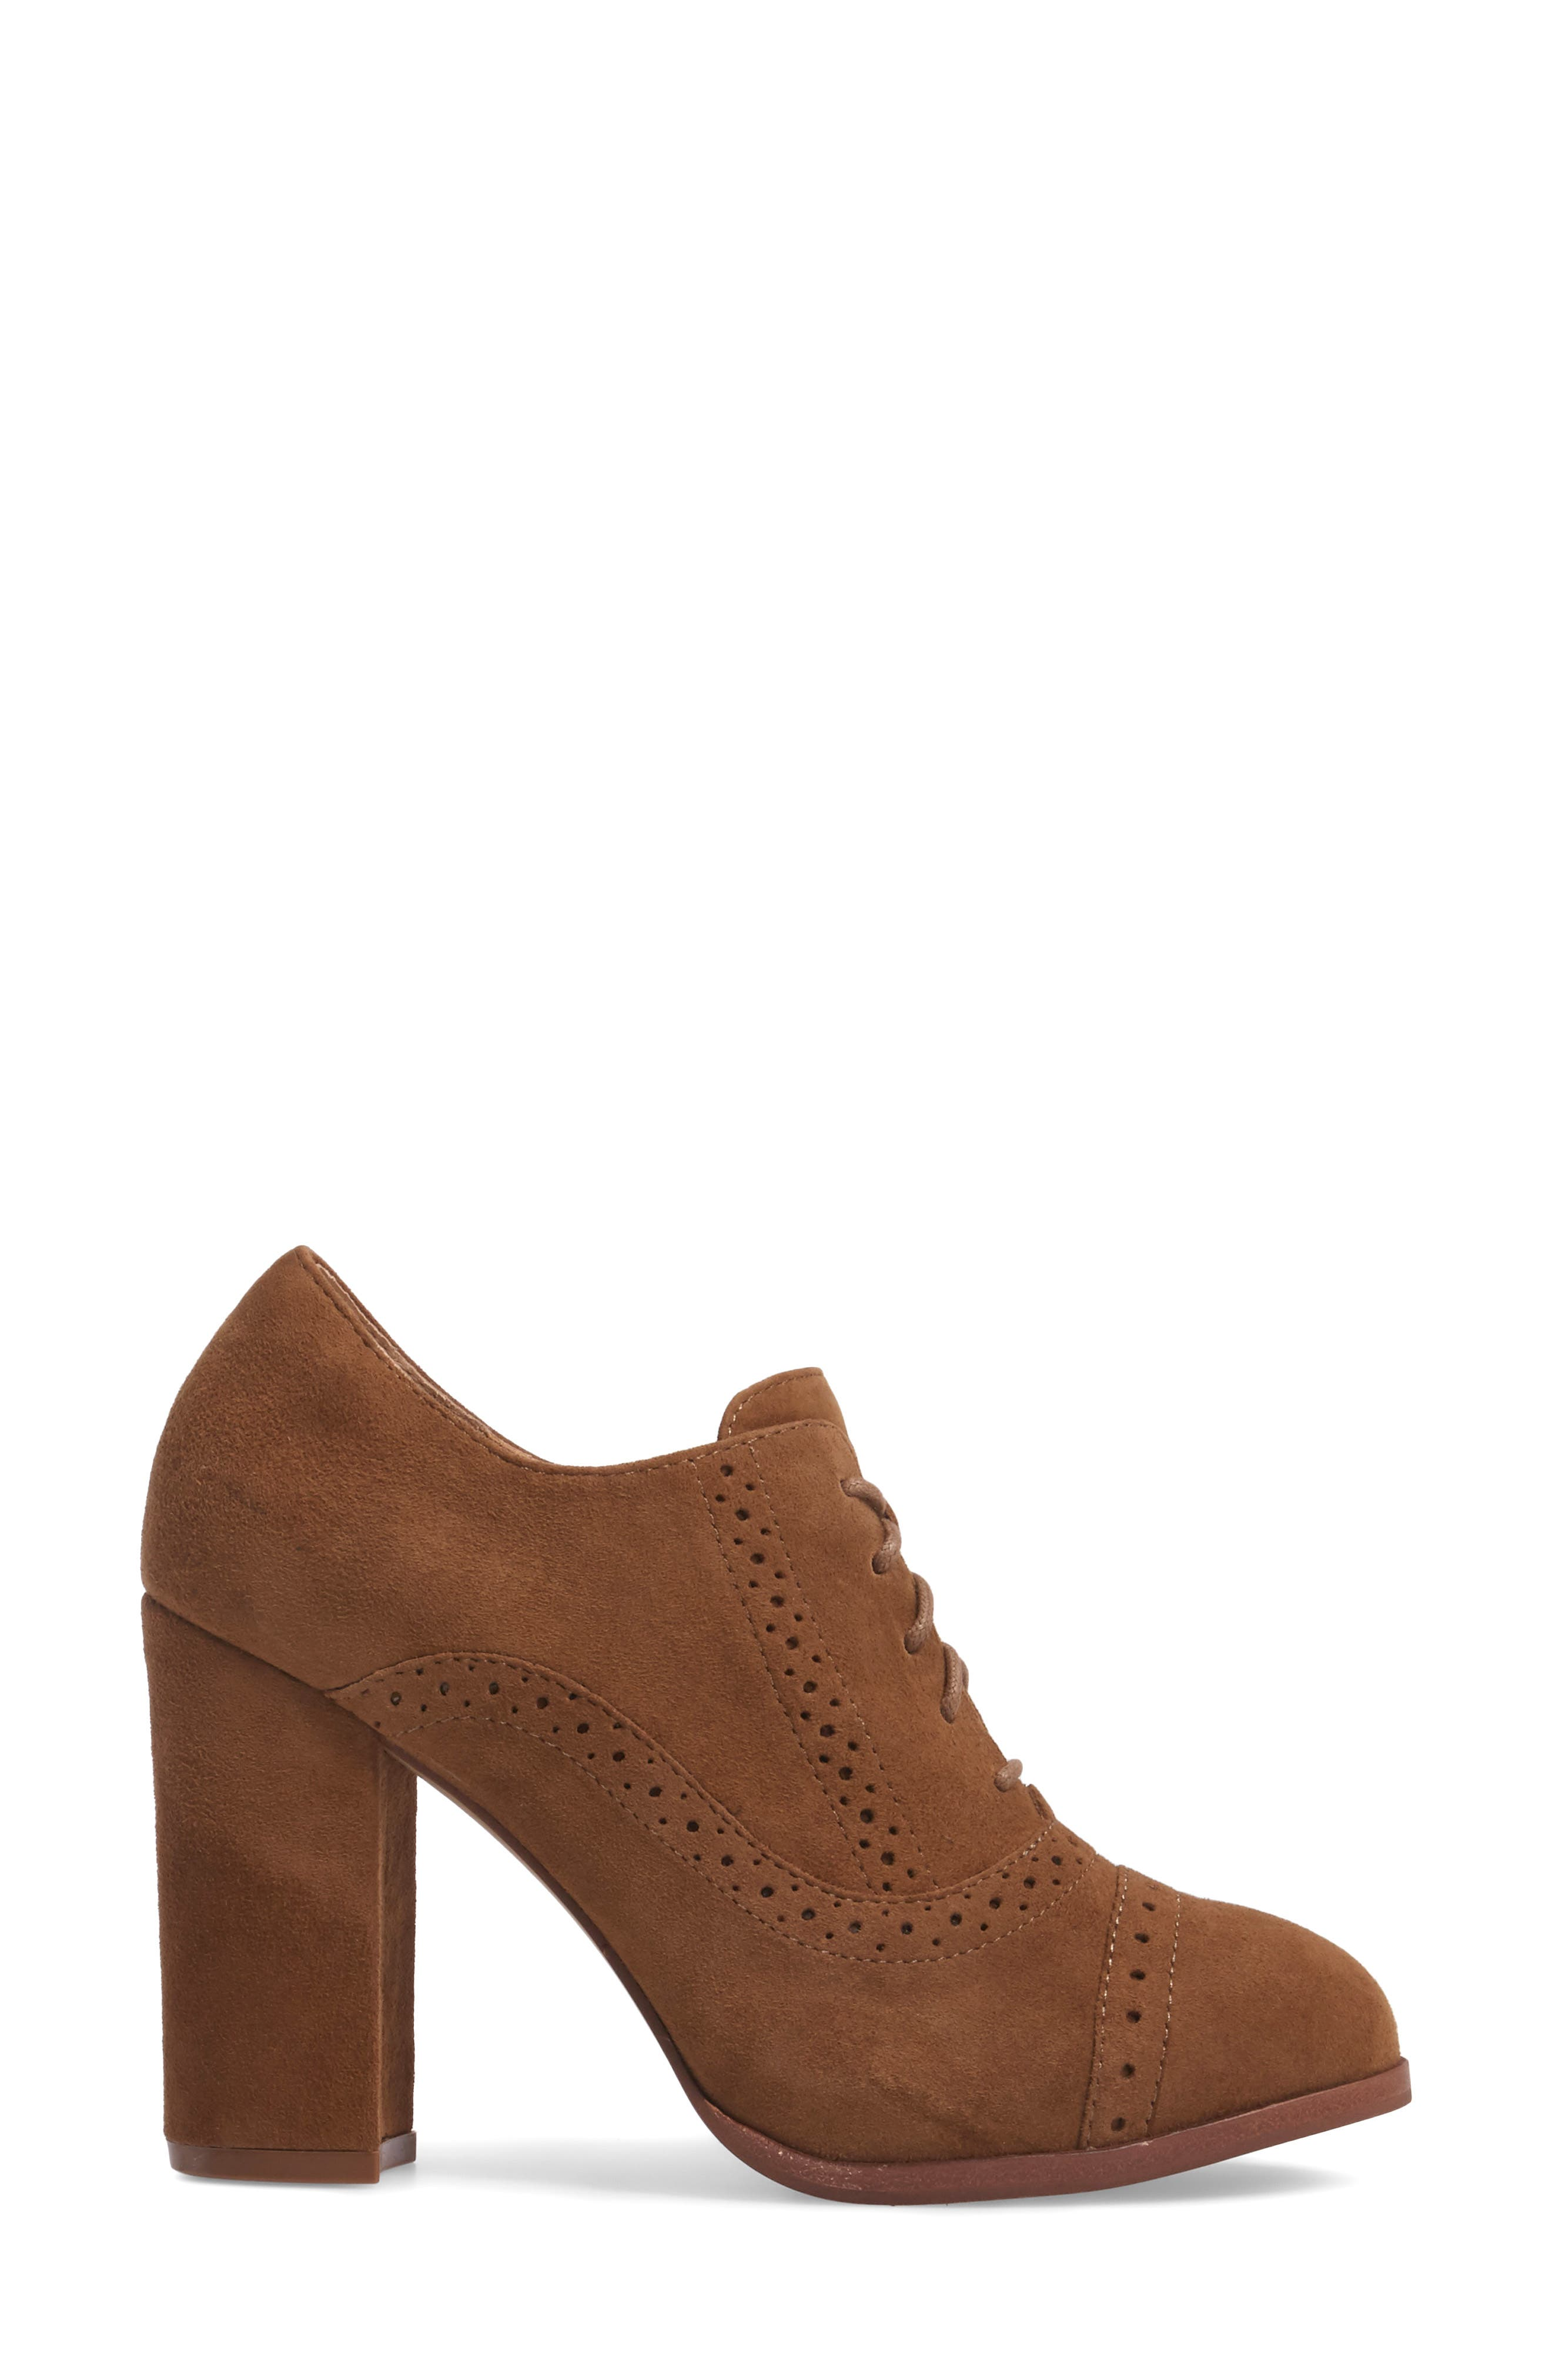 ISOLÁ, Holli Oxford Pump, Alternate thumbnail 3, color, LIGHT BROWN SUEDE